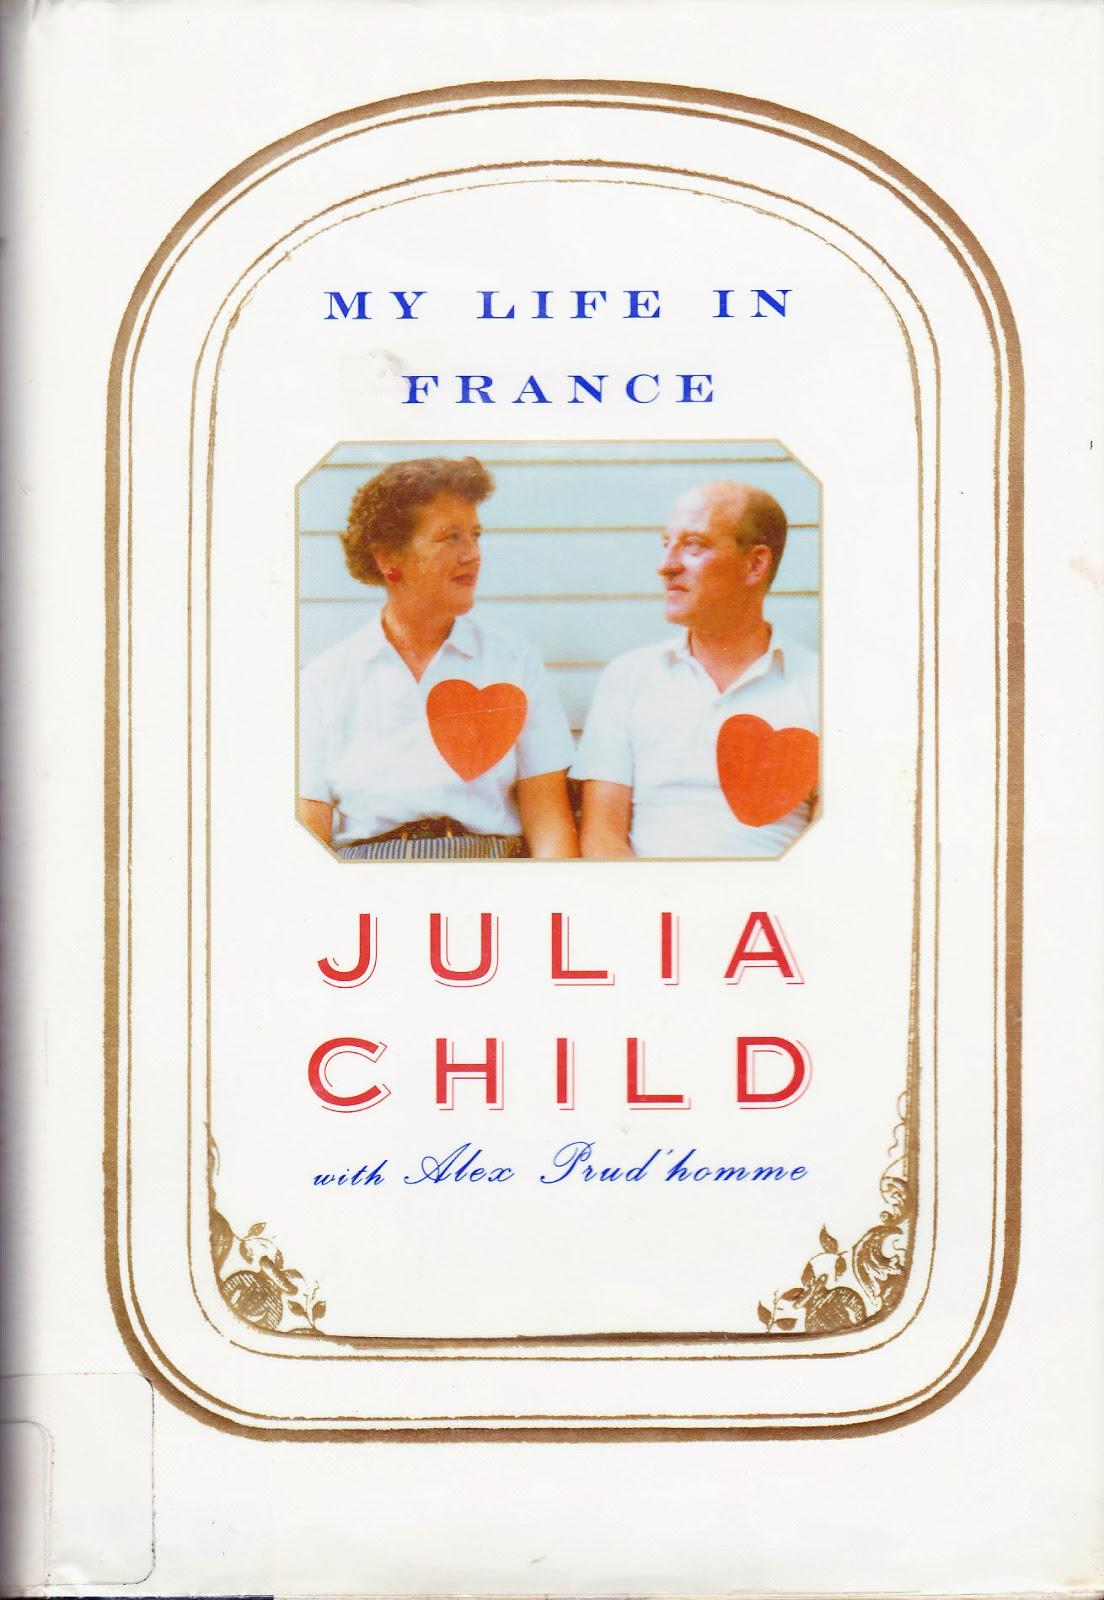 http://discover.halifaxpubliclibraries.ca/?q=title:%22my%20life%20in%20france%22